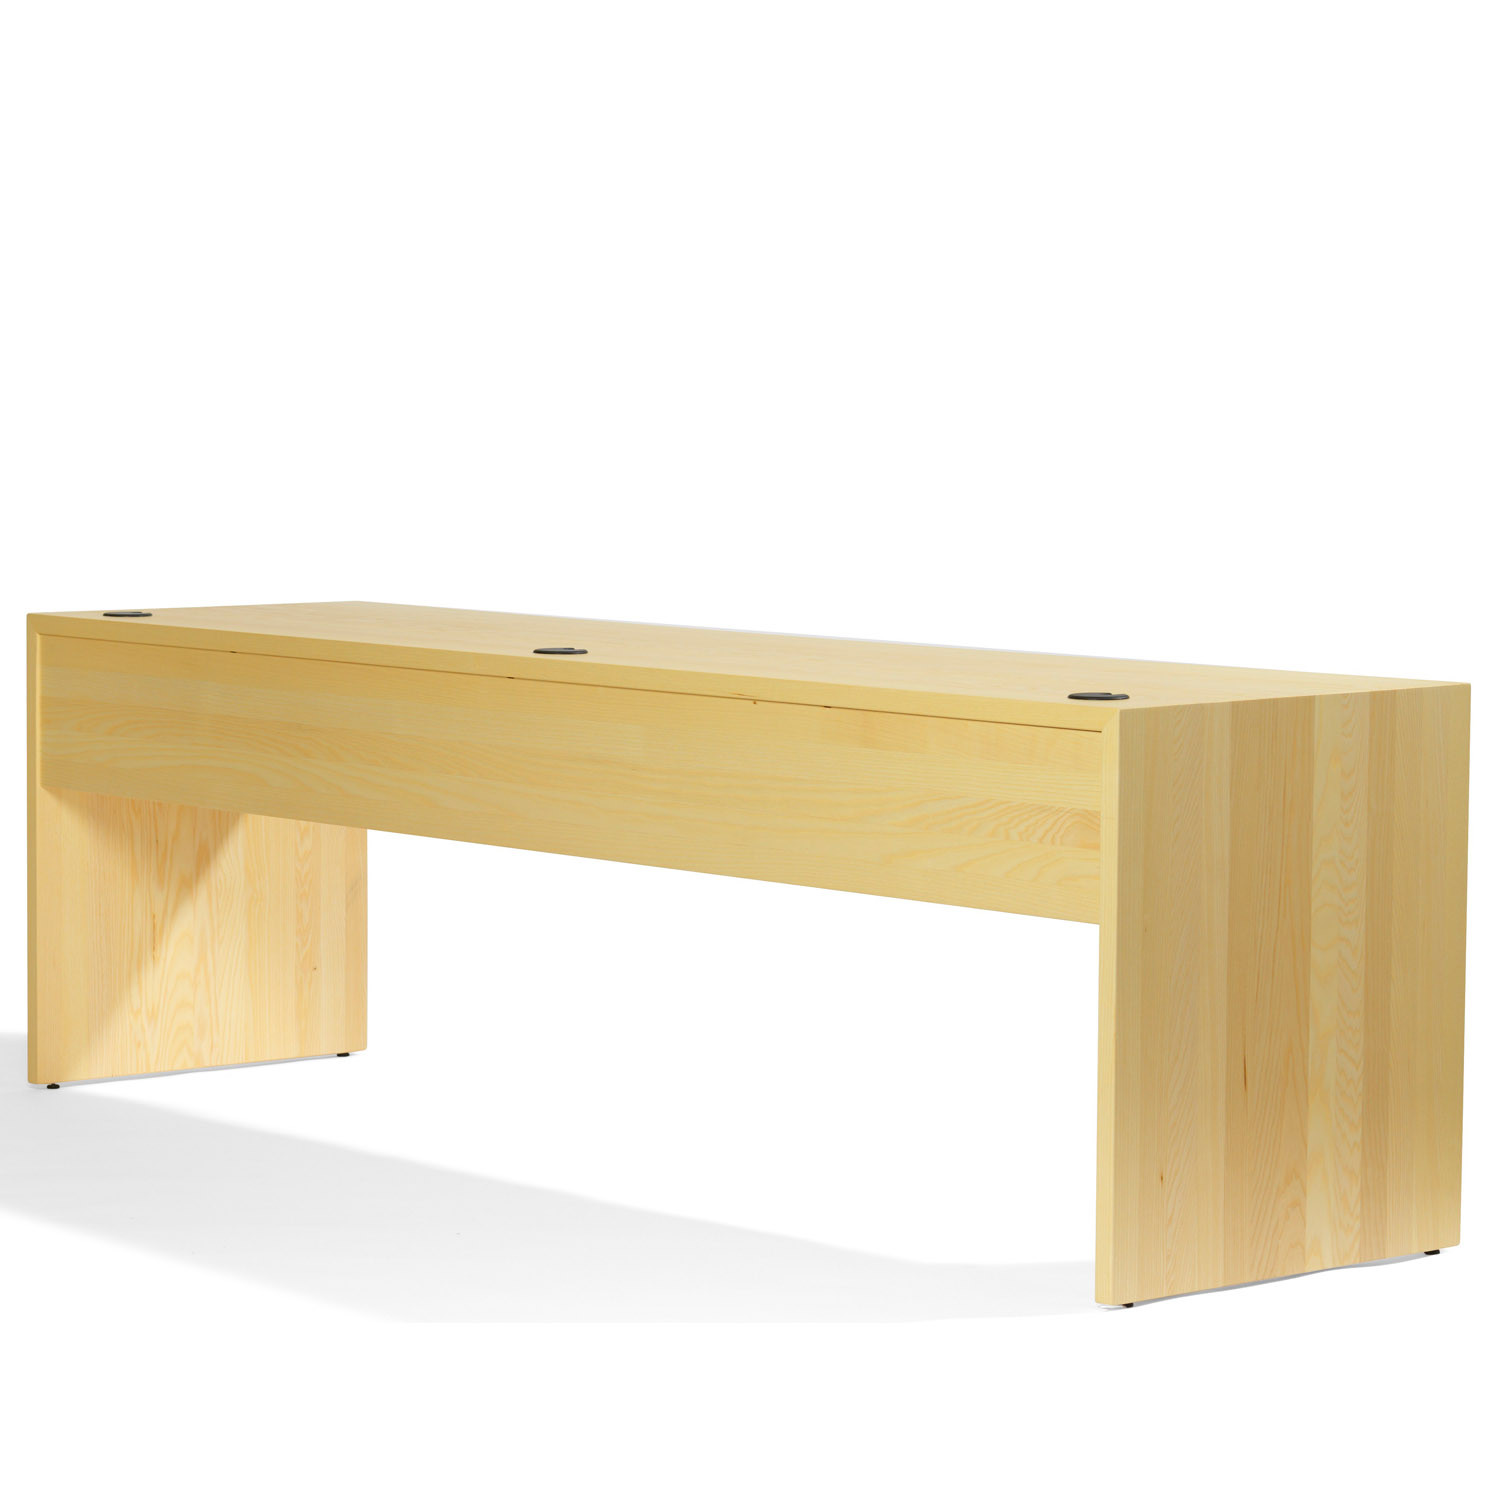 Ping-Pong Table L23 by Bla Station